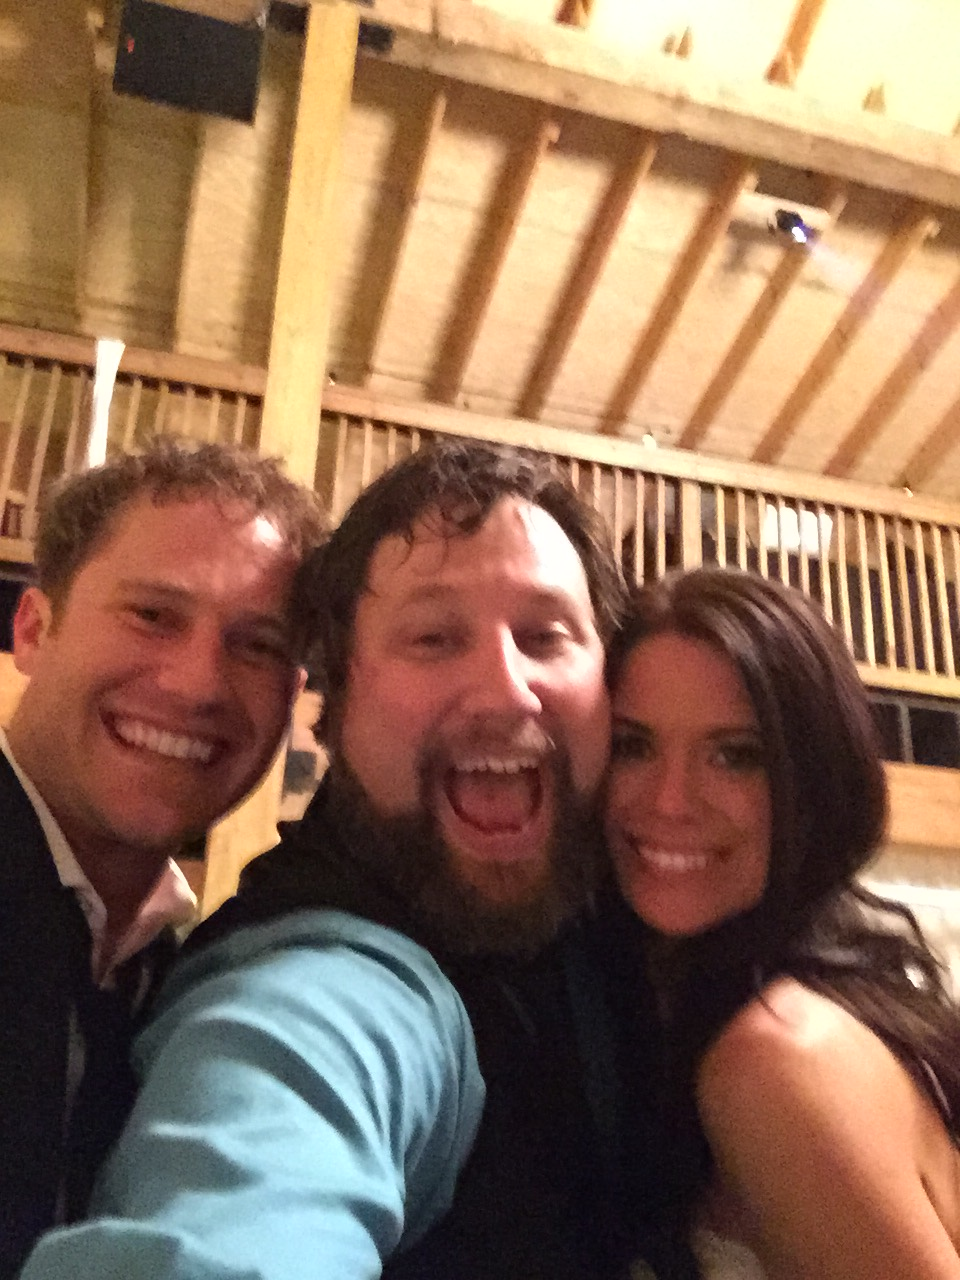 Burton, Brad, and Rebecca dance floor selfie.